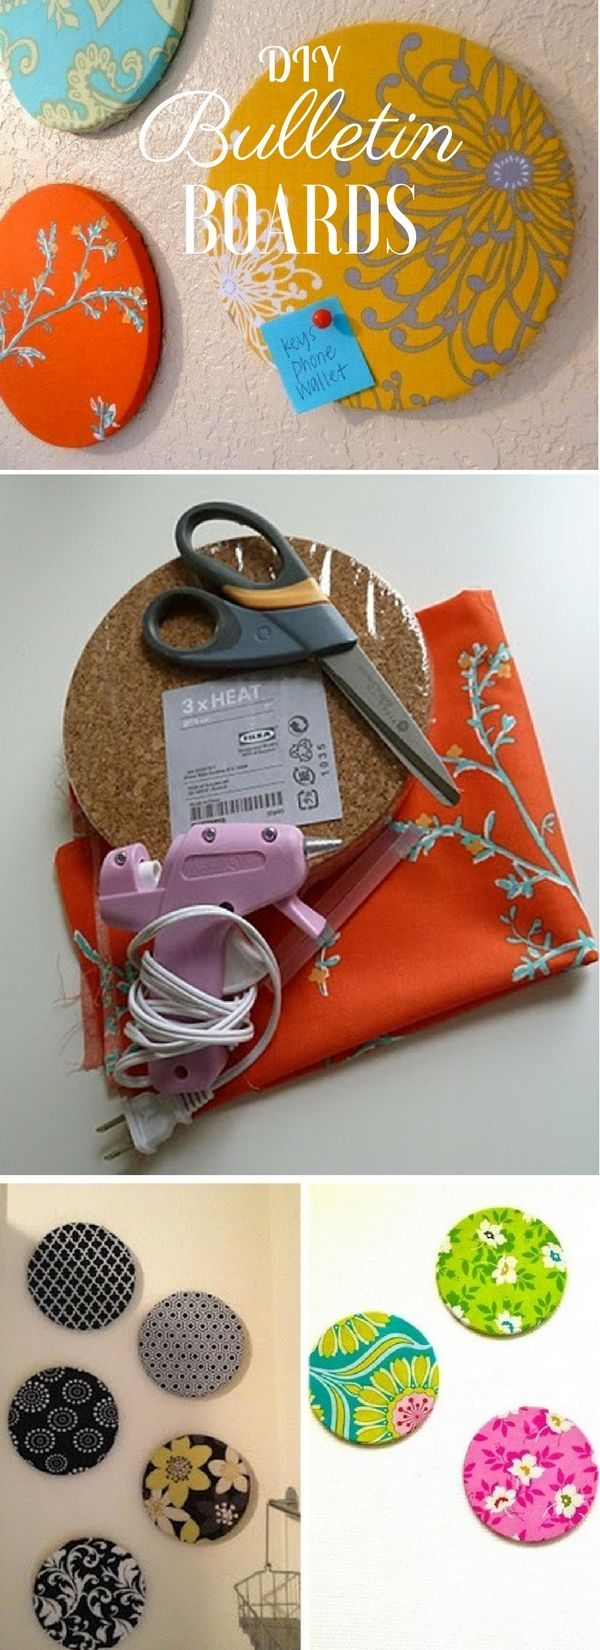 Check out the tutorial: #DIY Bulletin Boards @istandarddesign